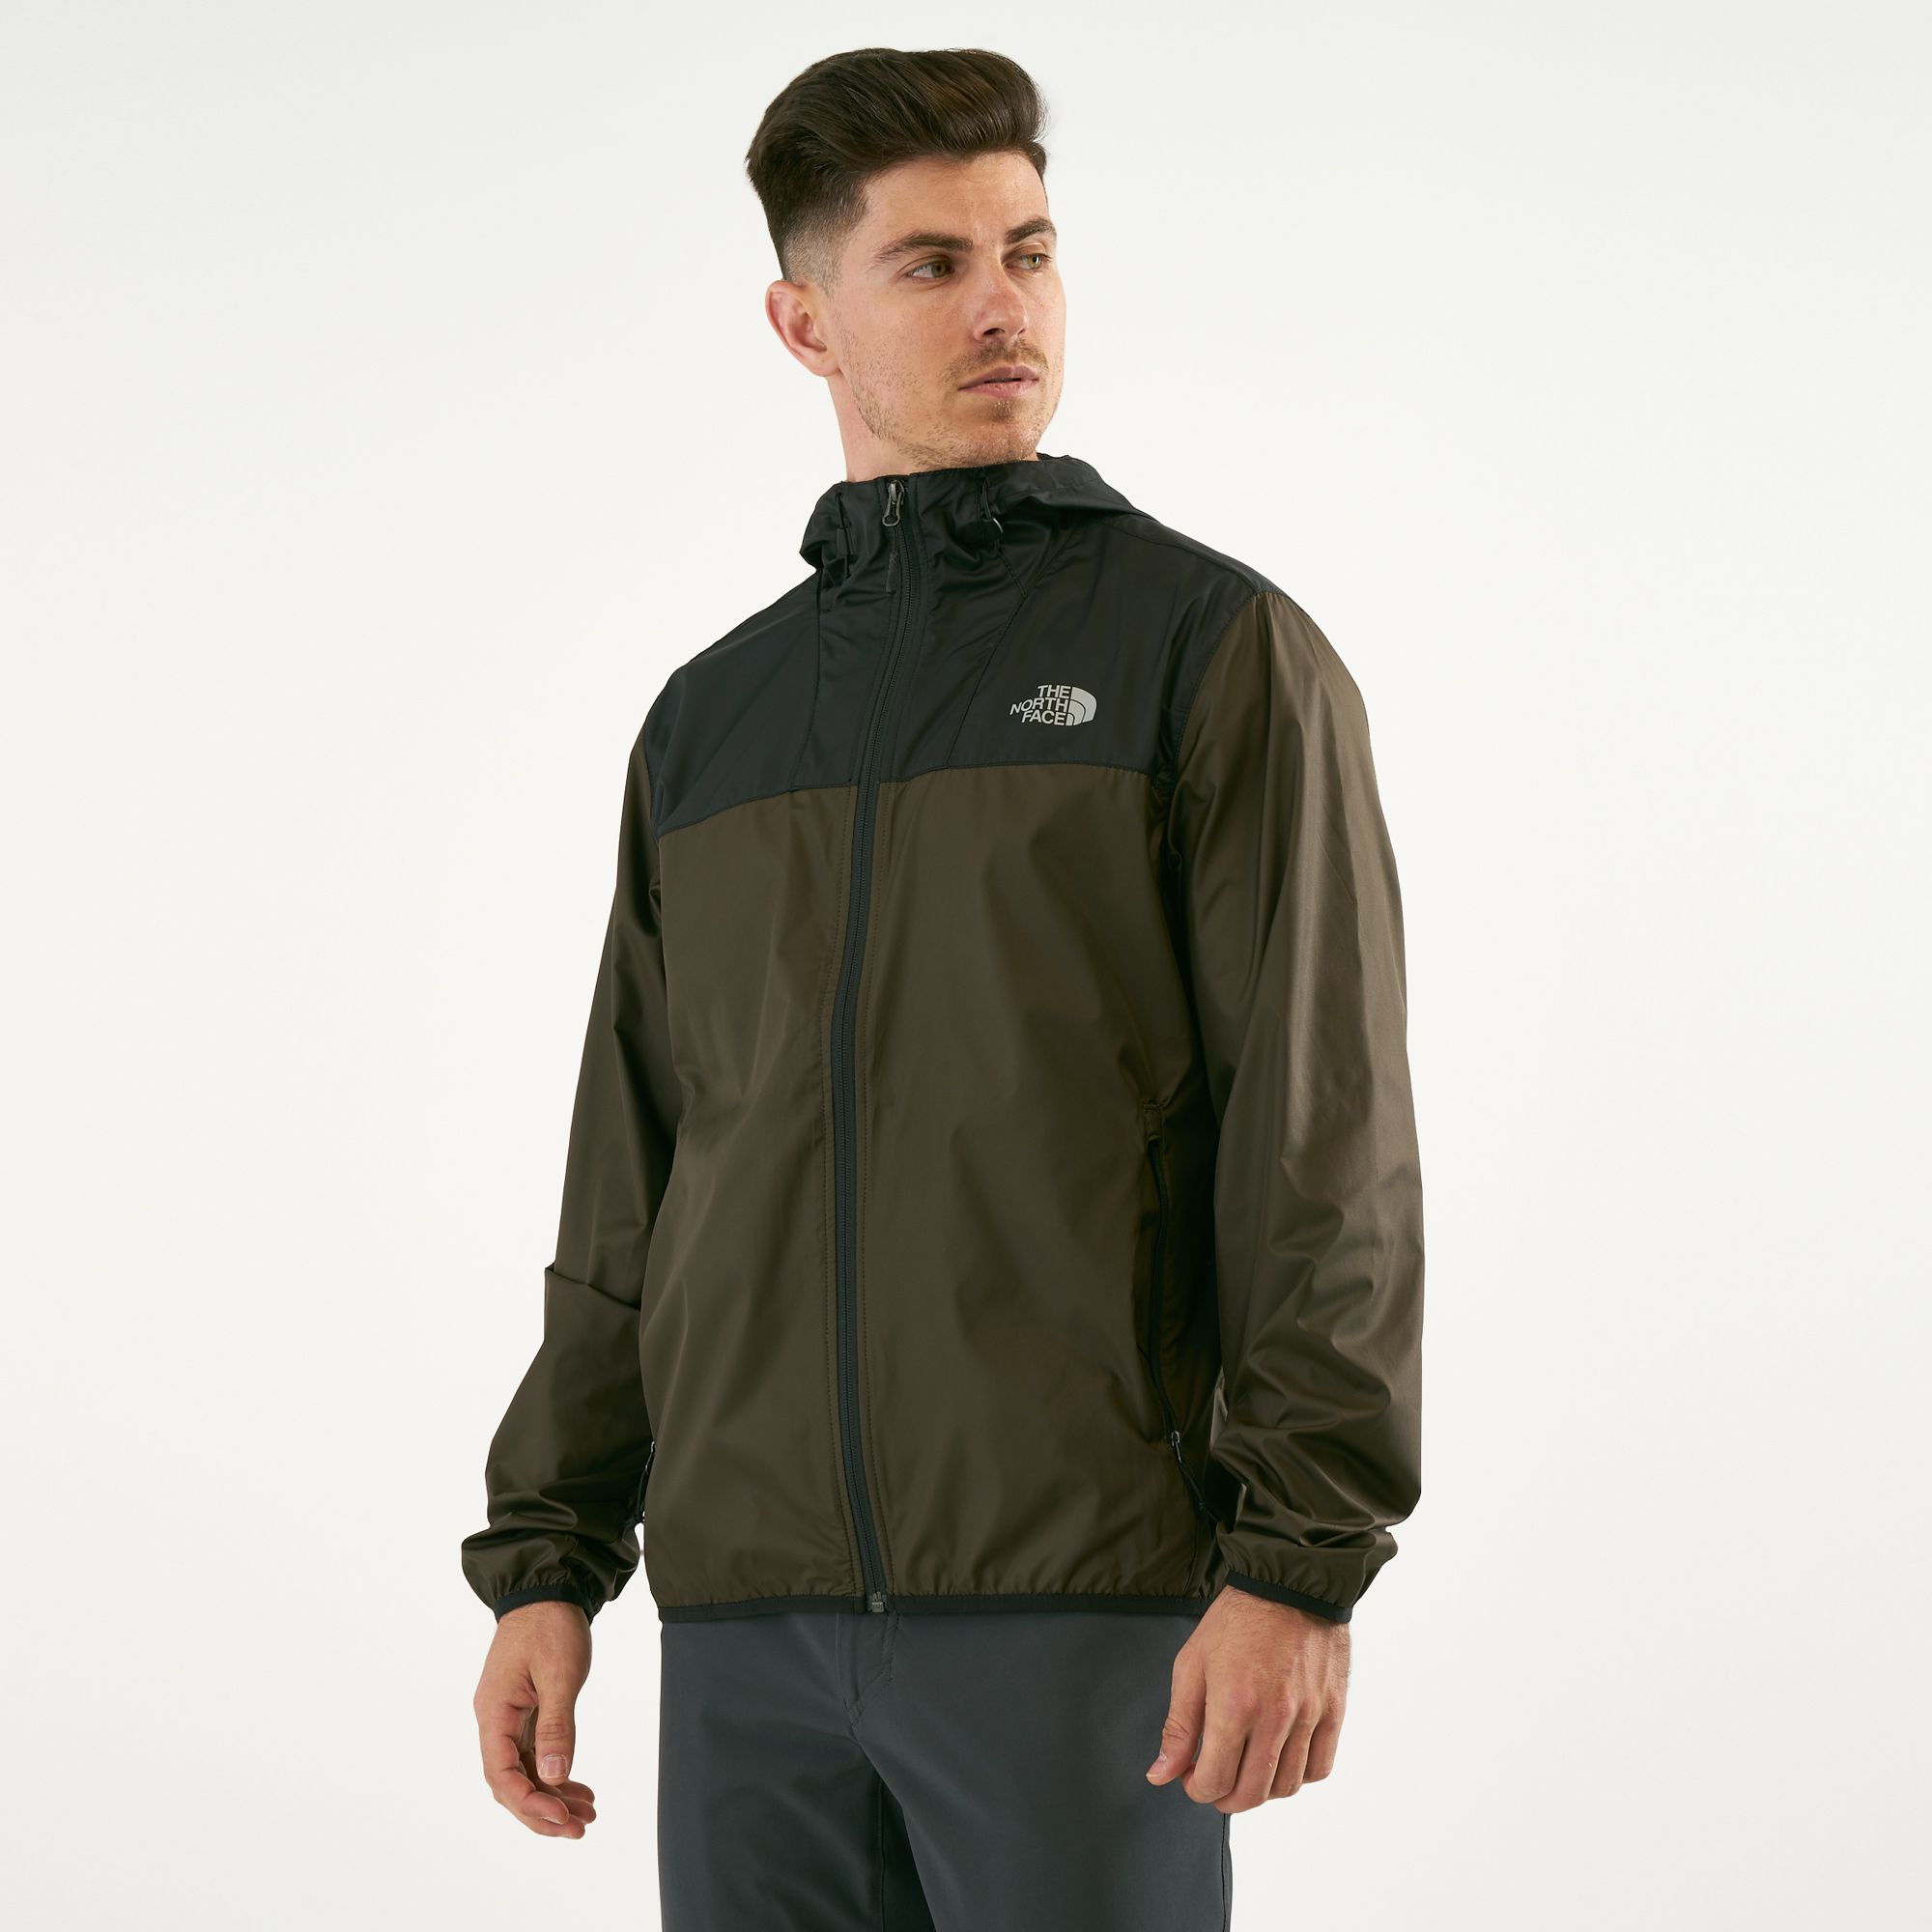 58219a499 The North Face Men's Cyclone 2 Hooded Wind Jacket